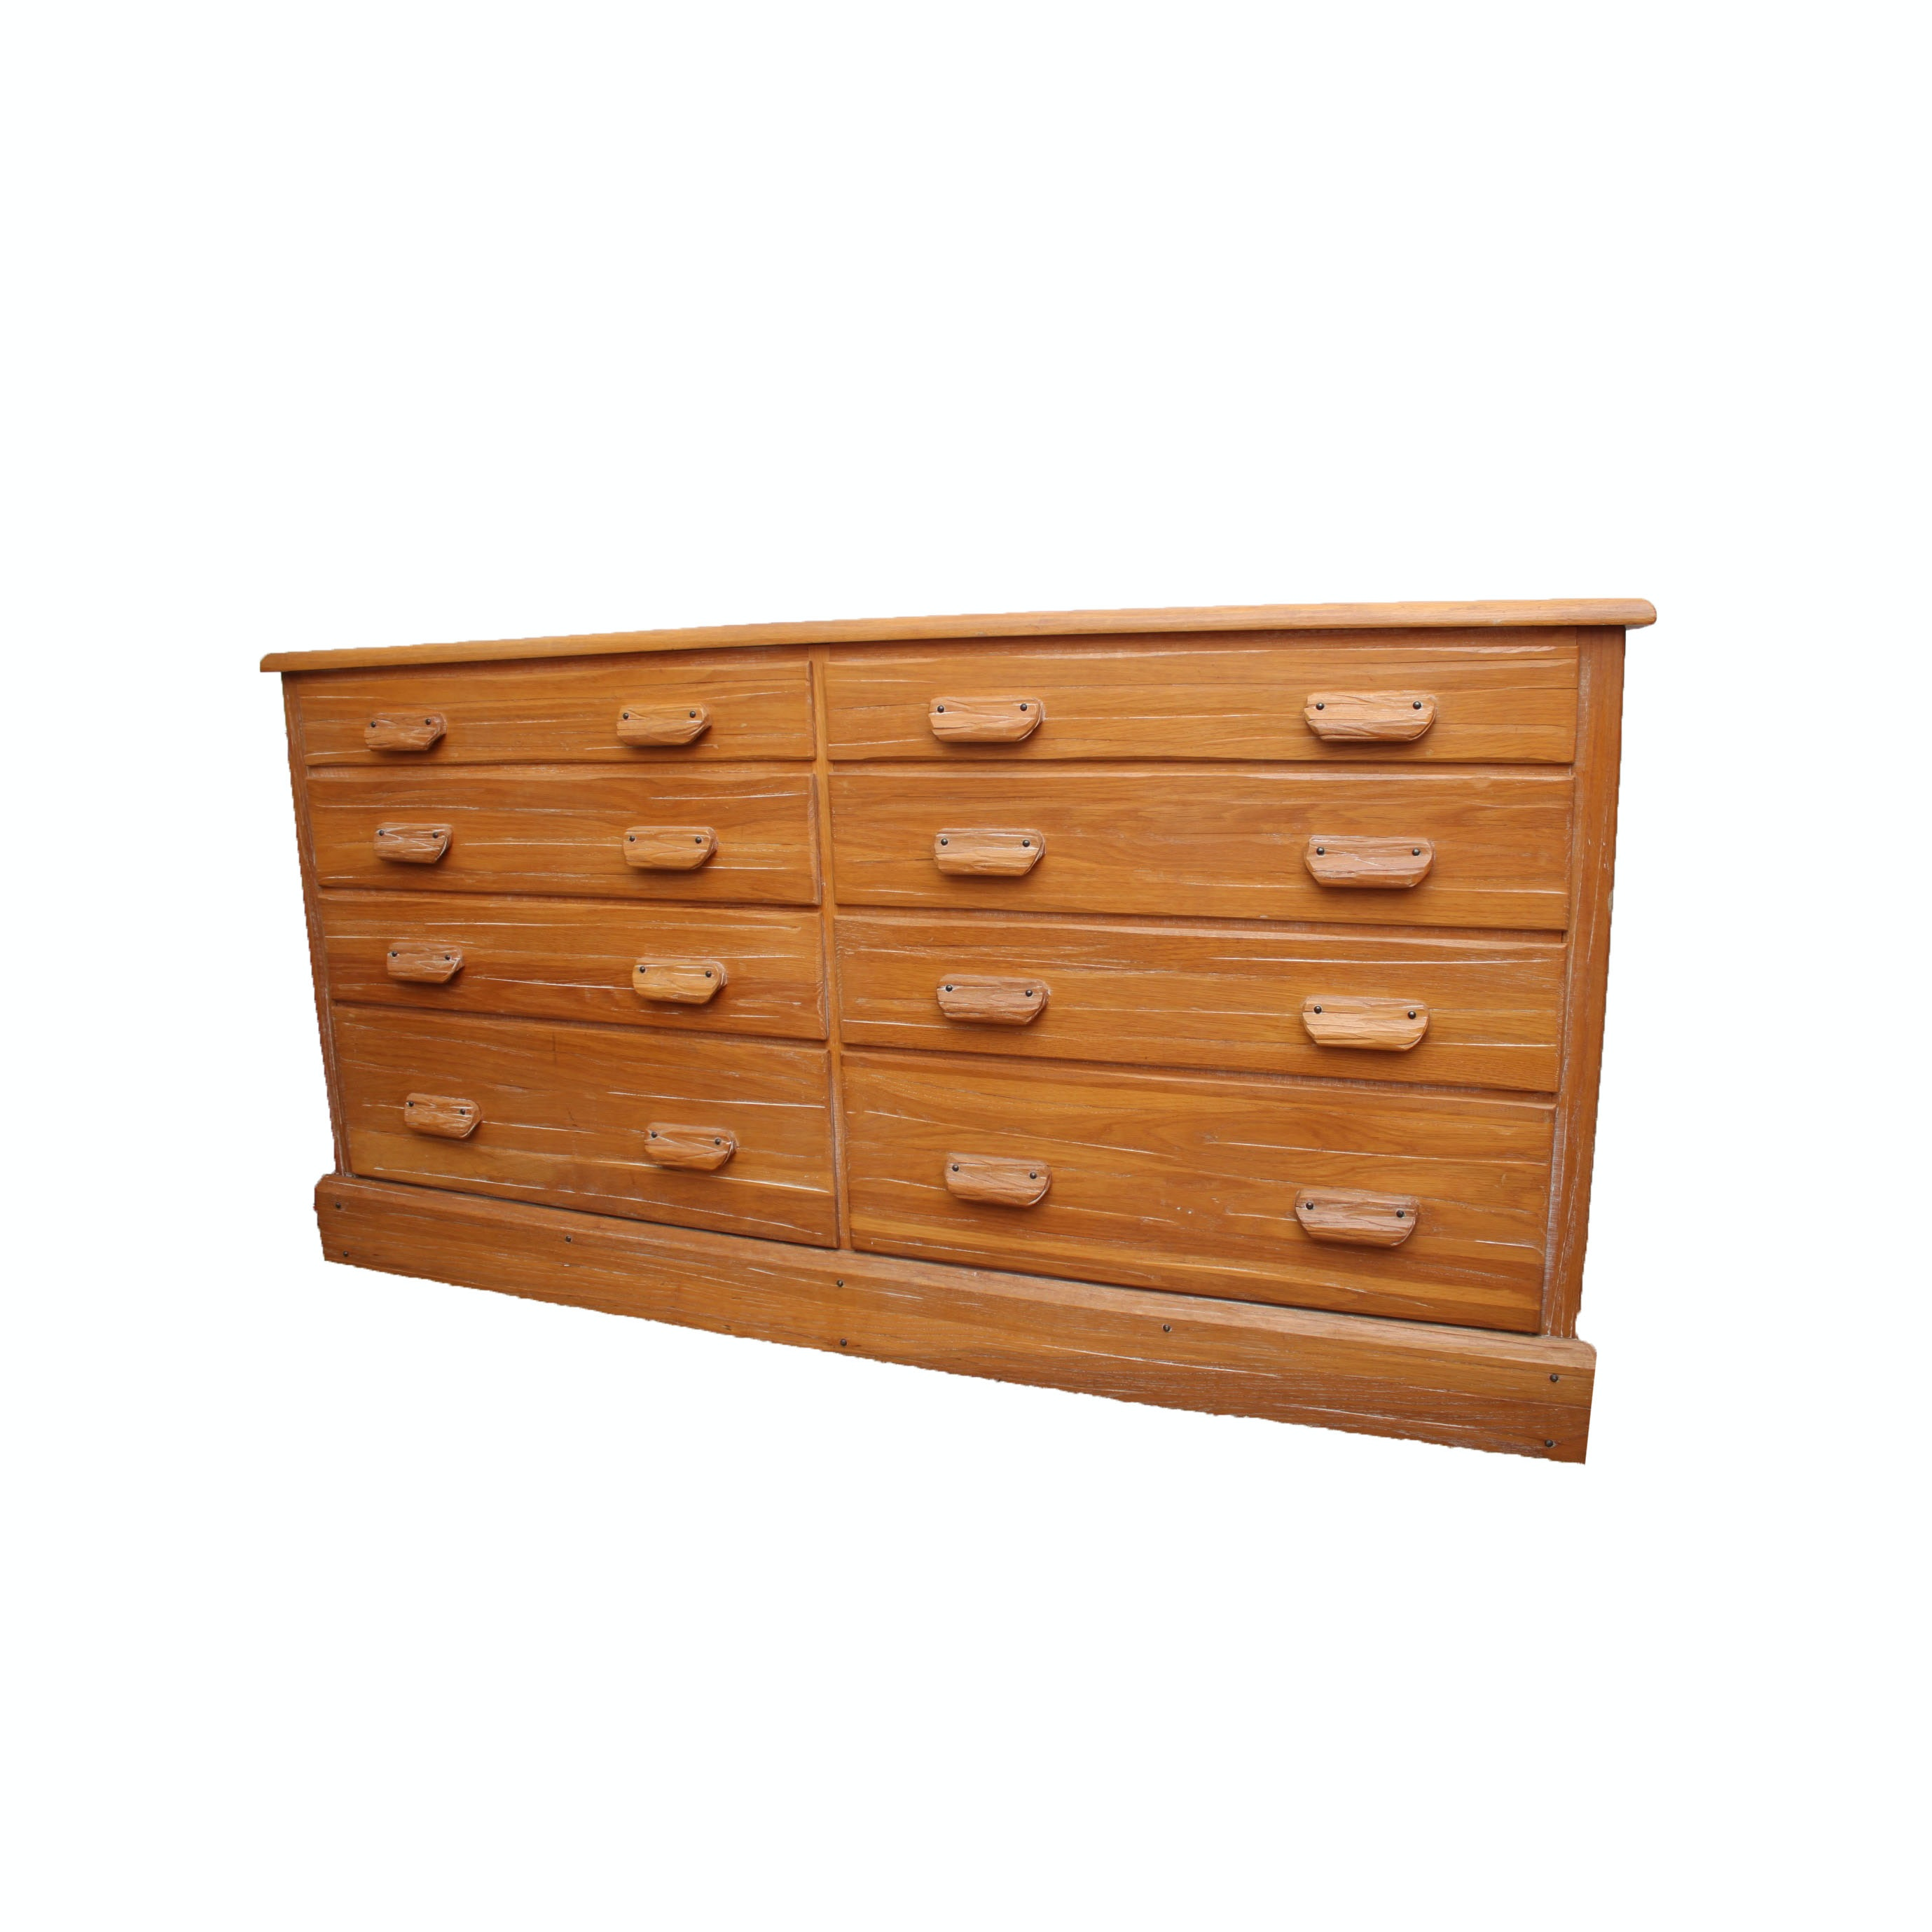 Vintage Oak Chest of Drawers by Brandt